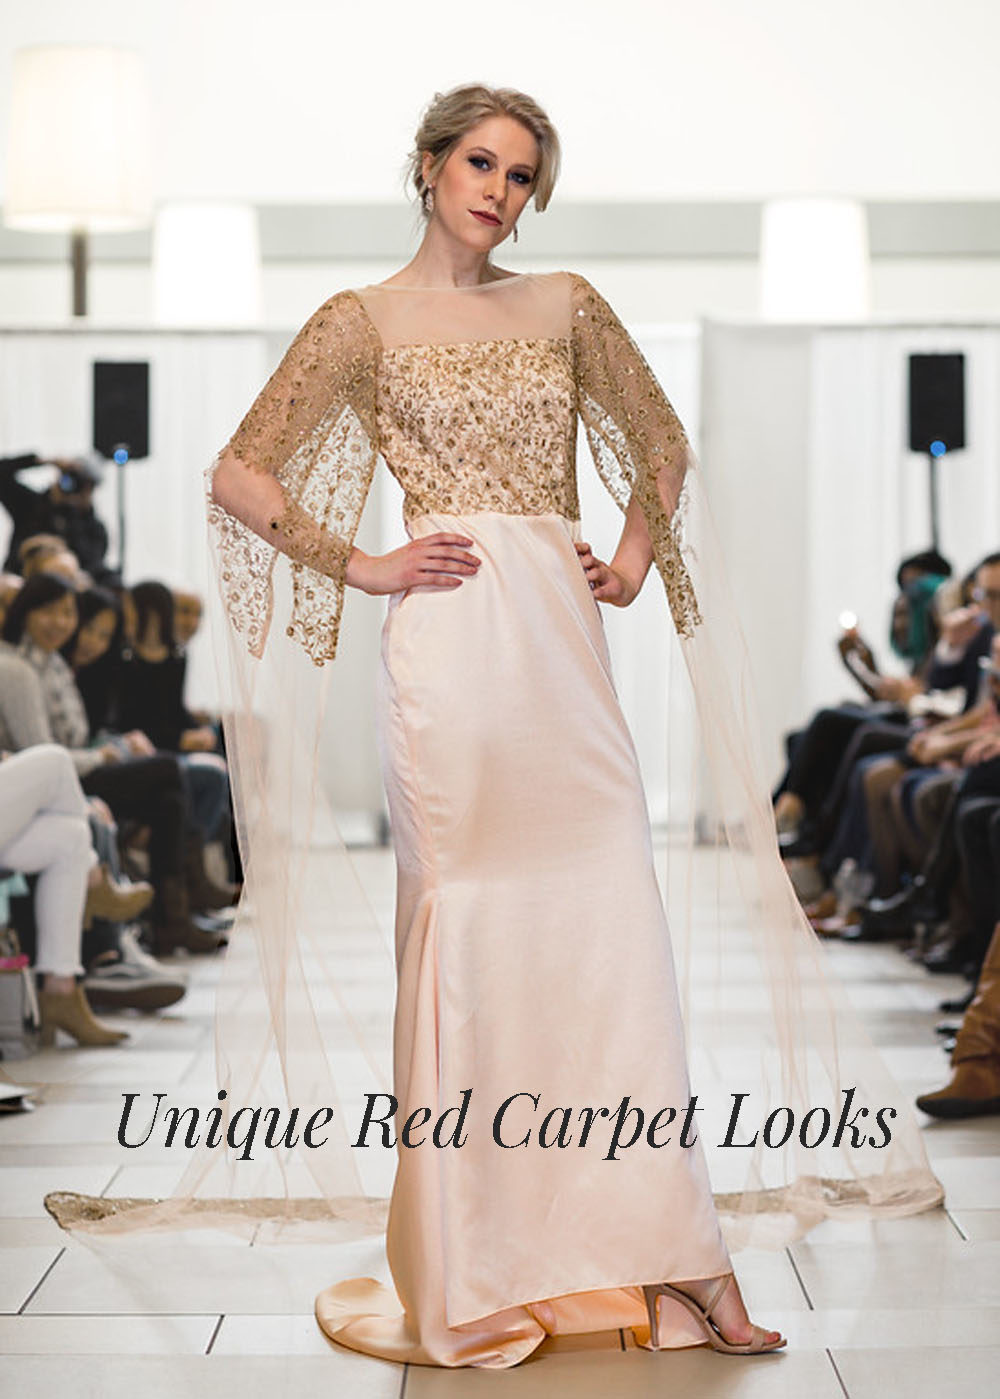 SEattle Designer Boutique red carpet dresses bellevue  fashion prom homecoming